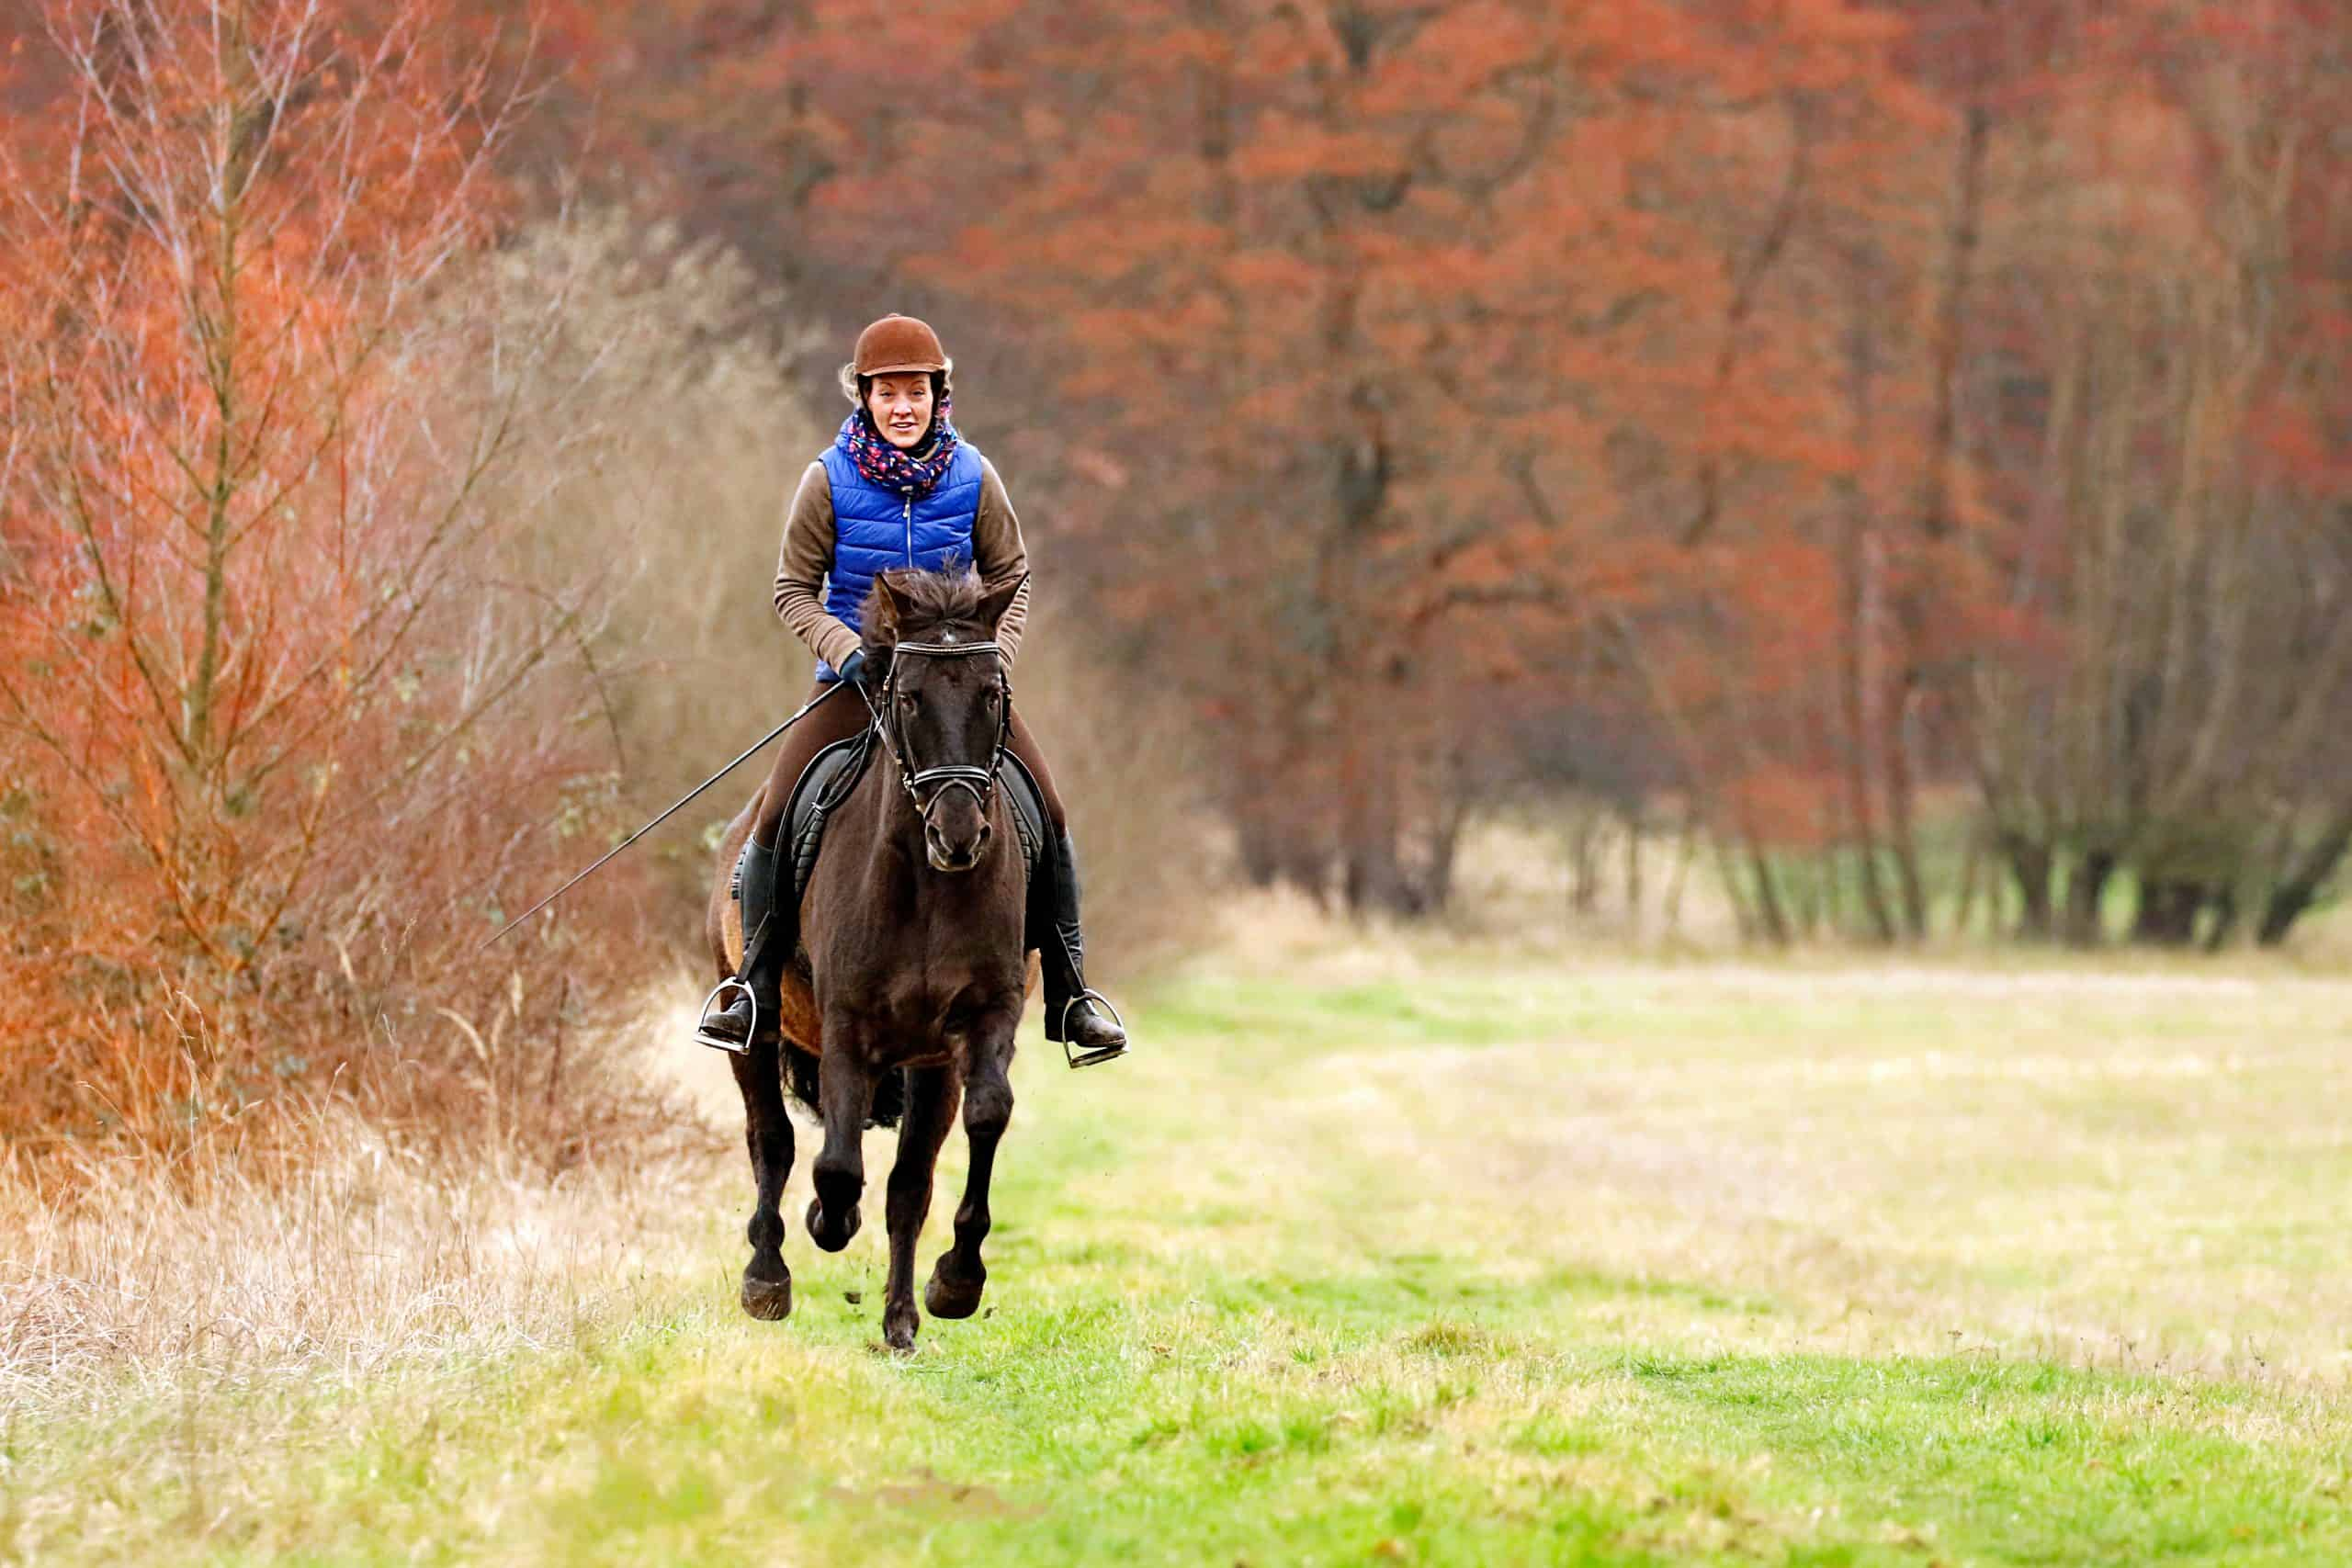 People horse riding girl woman jockey fields forests cantering galloping equestrian